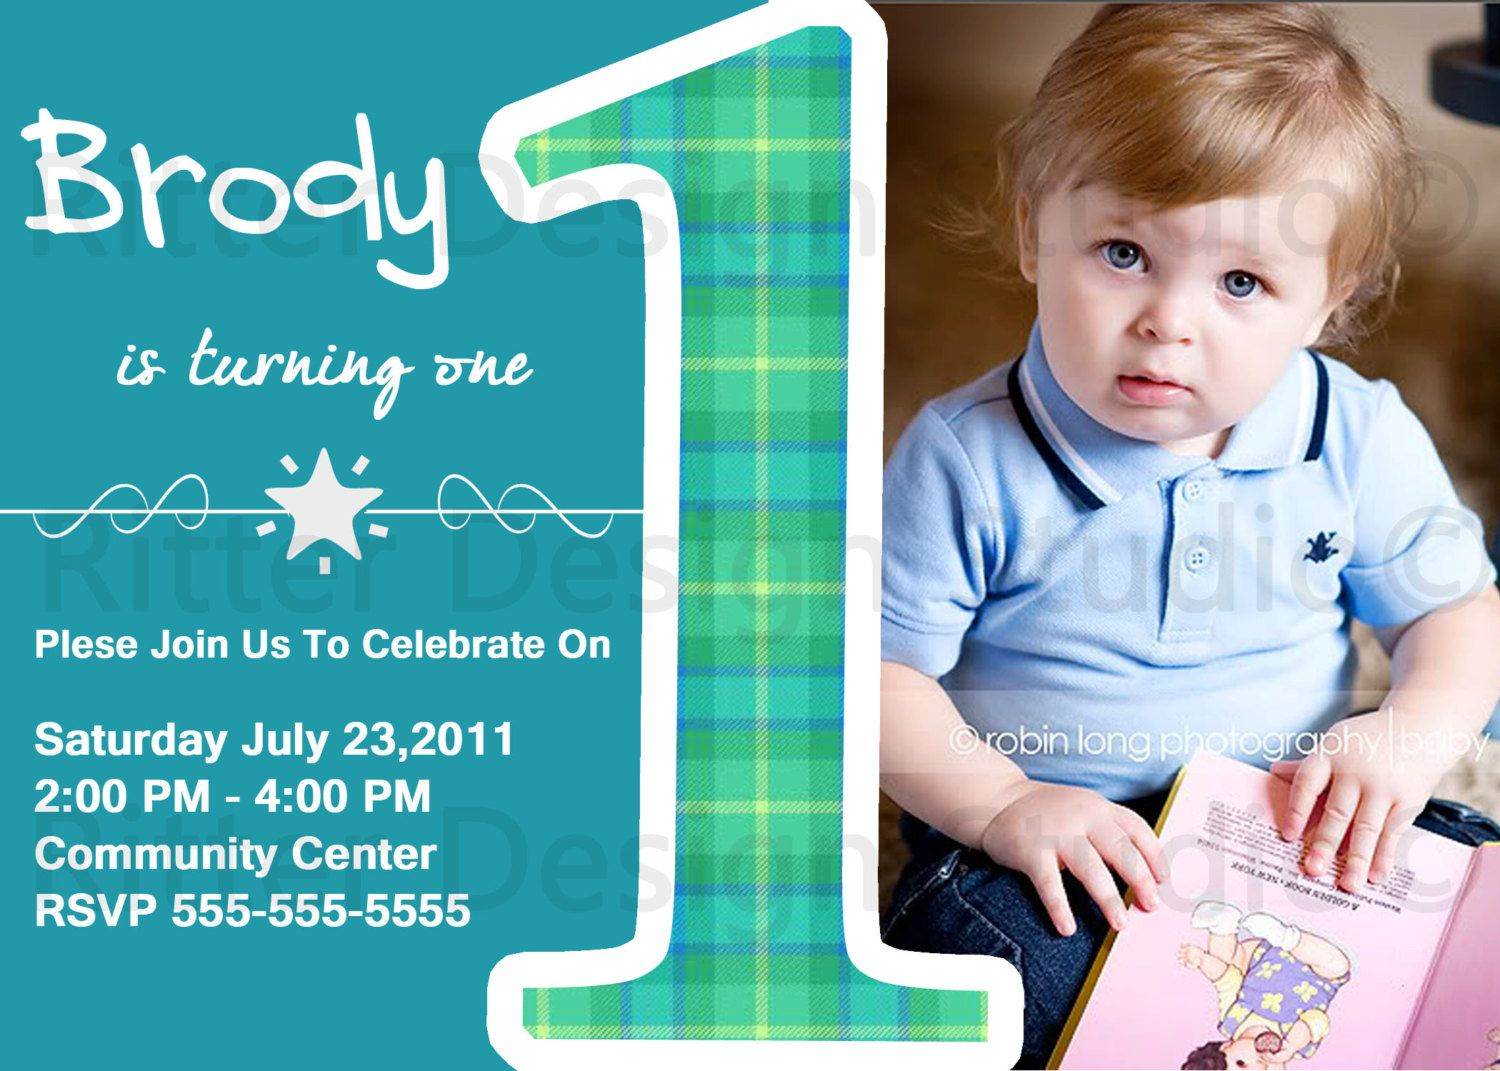 Baby Boy First Birthday Party Invitation Printable Birthday Party Invitations Printable Baby Birthday Invitations 1st Birthday Party Invitations